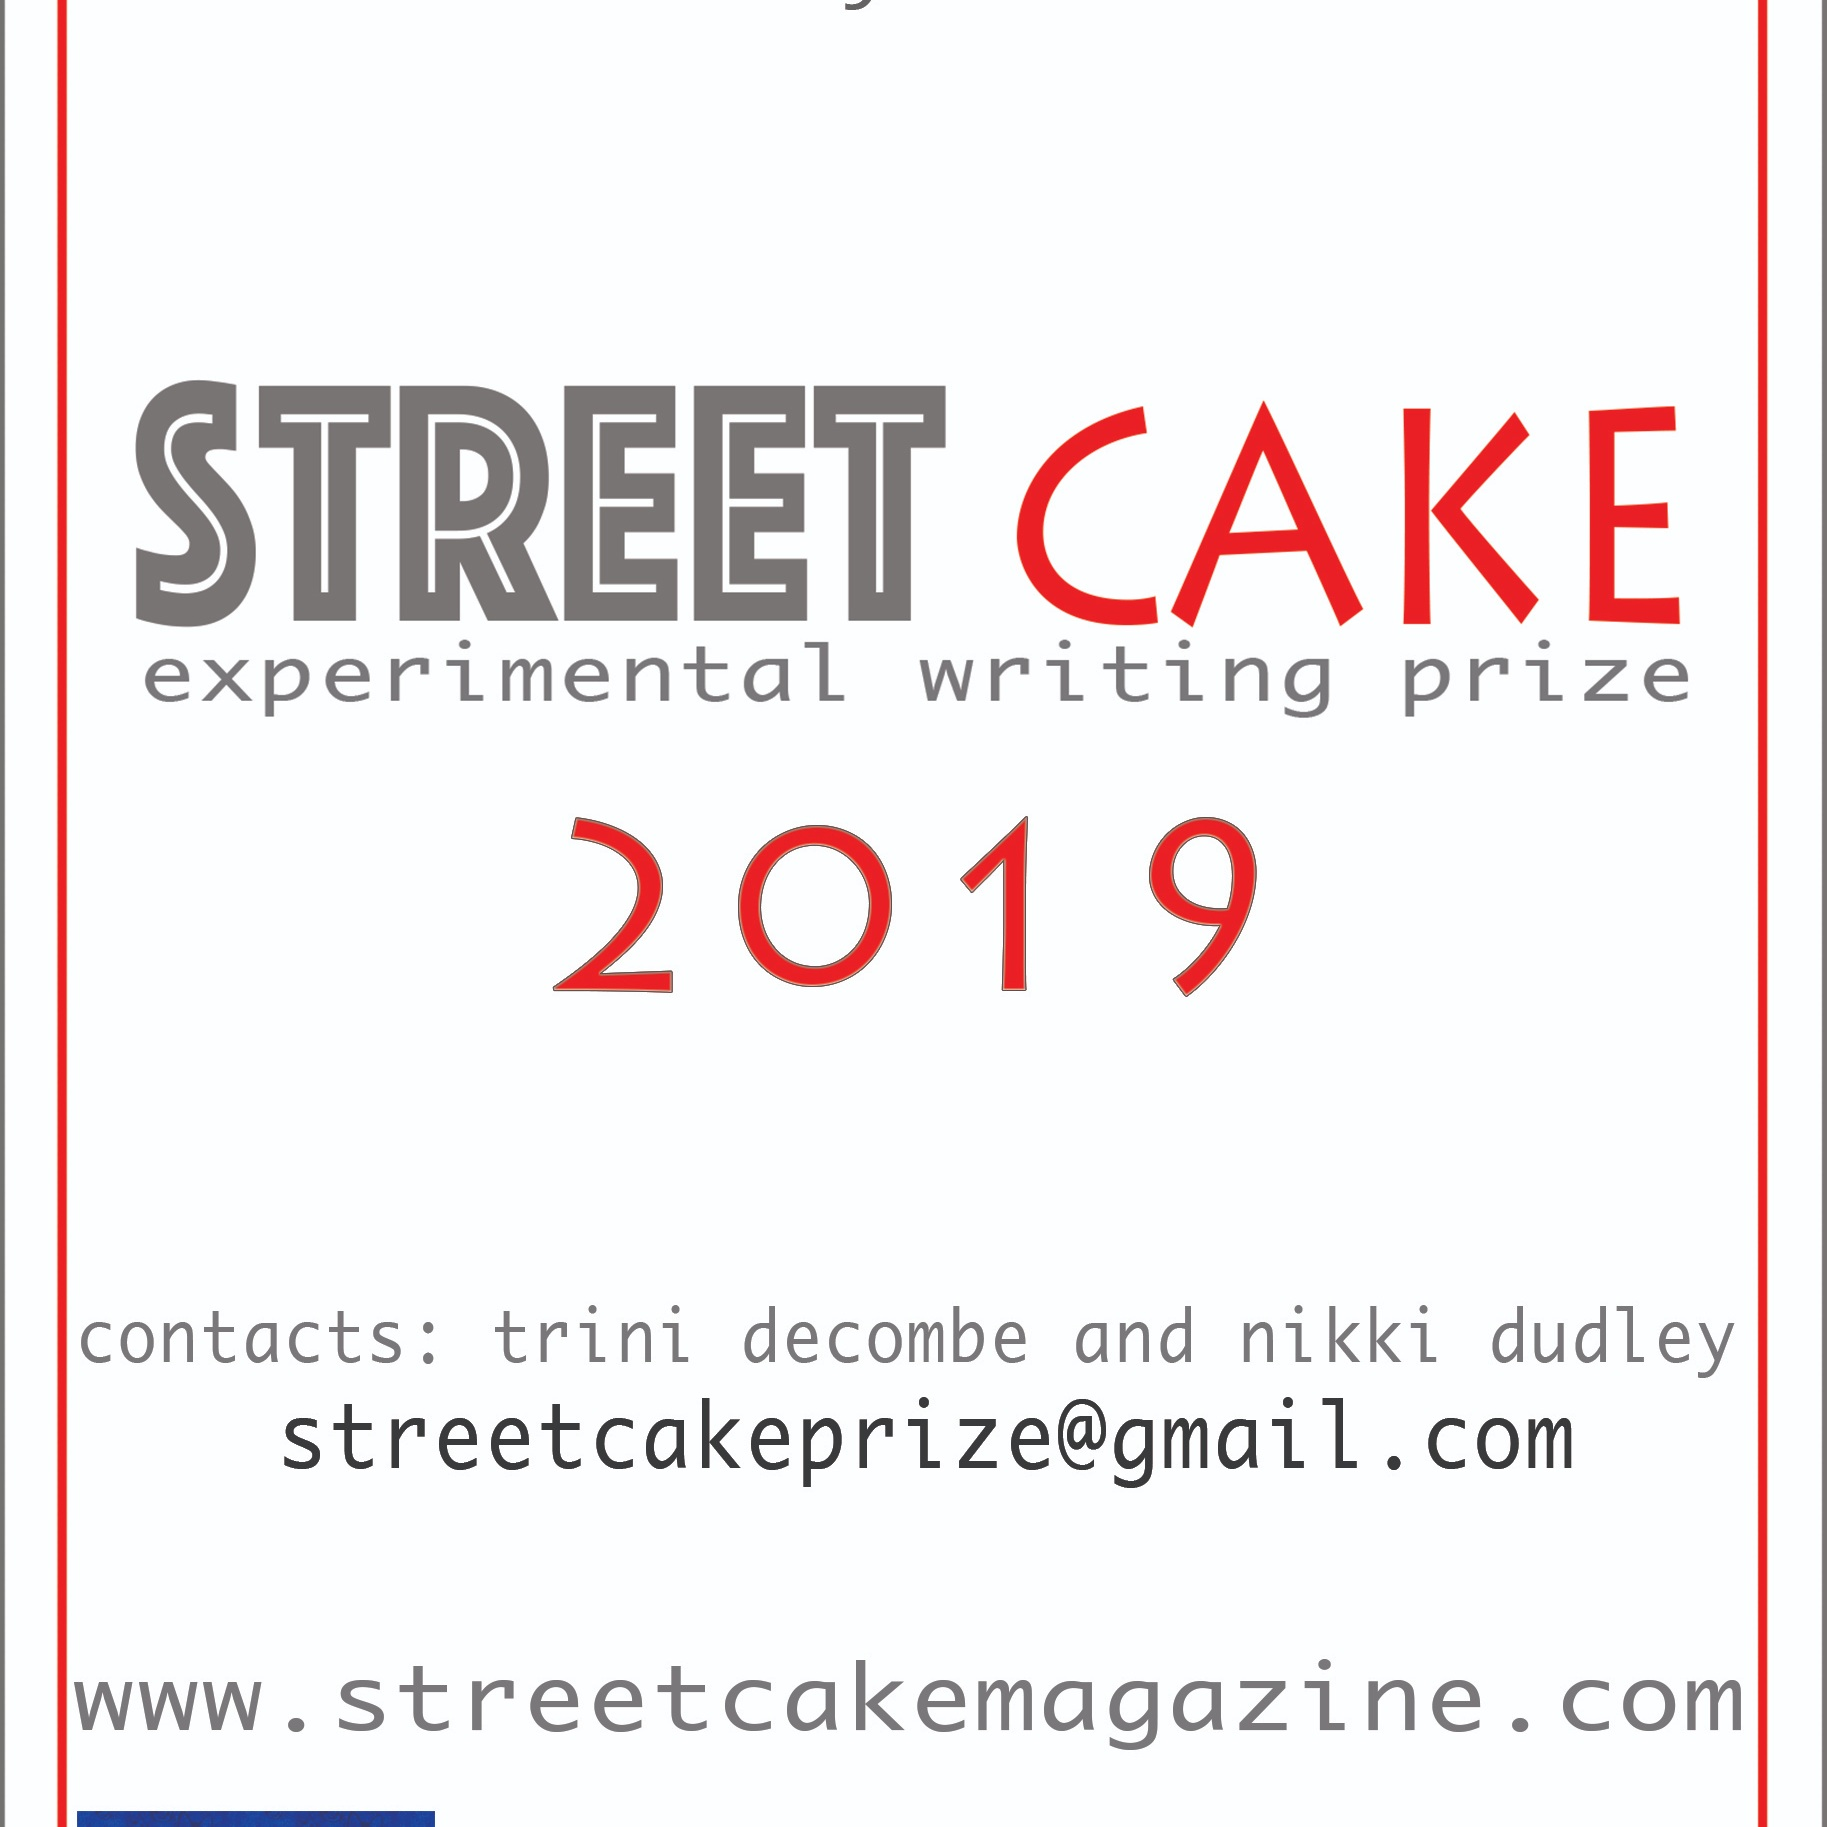 The Streetcake Experimental Writing Prize